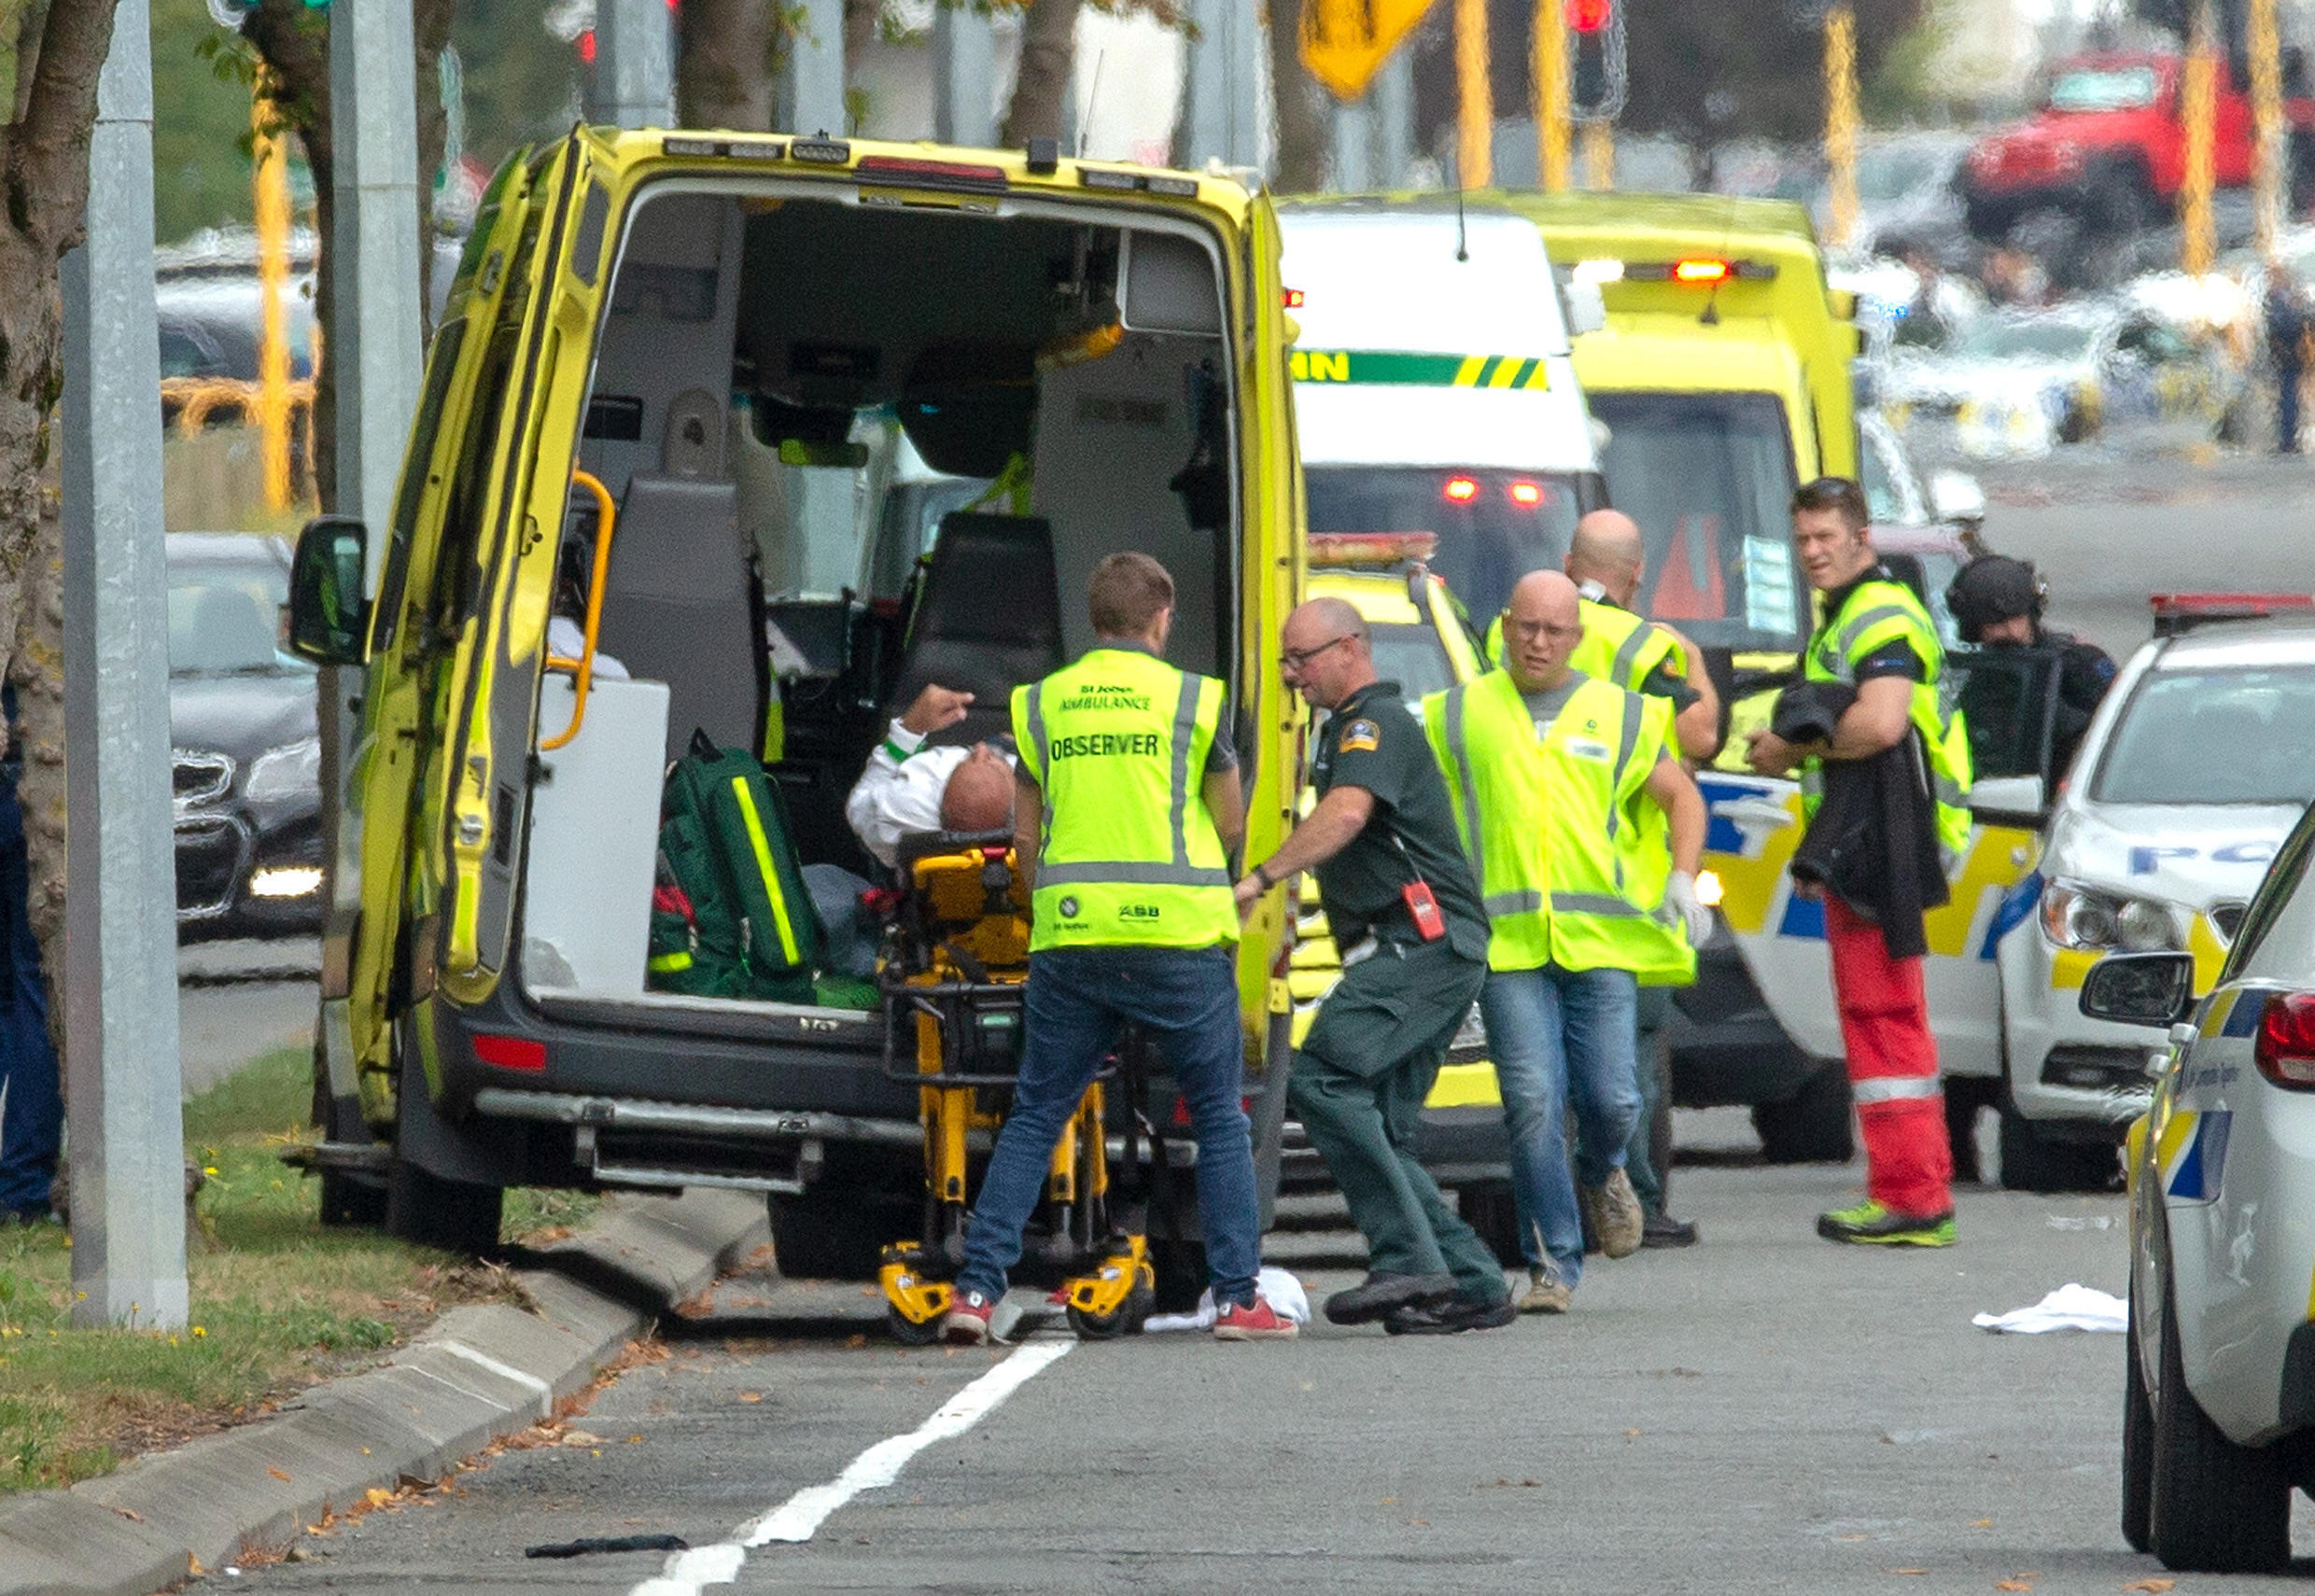 An injured person is loaded into an ambulance following a shooting at the Al Noor mosque in Christchurch, New Zealand, March 15, 2019.